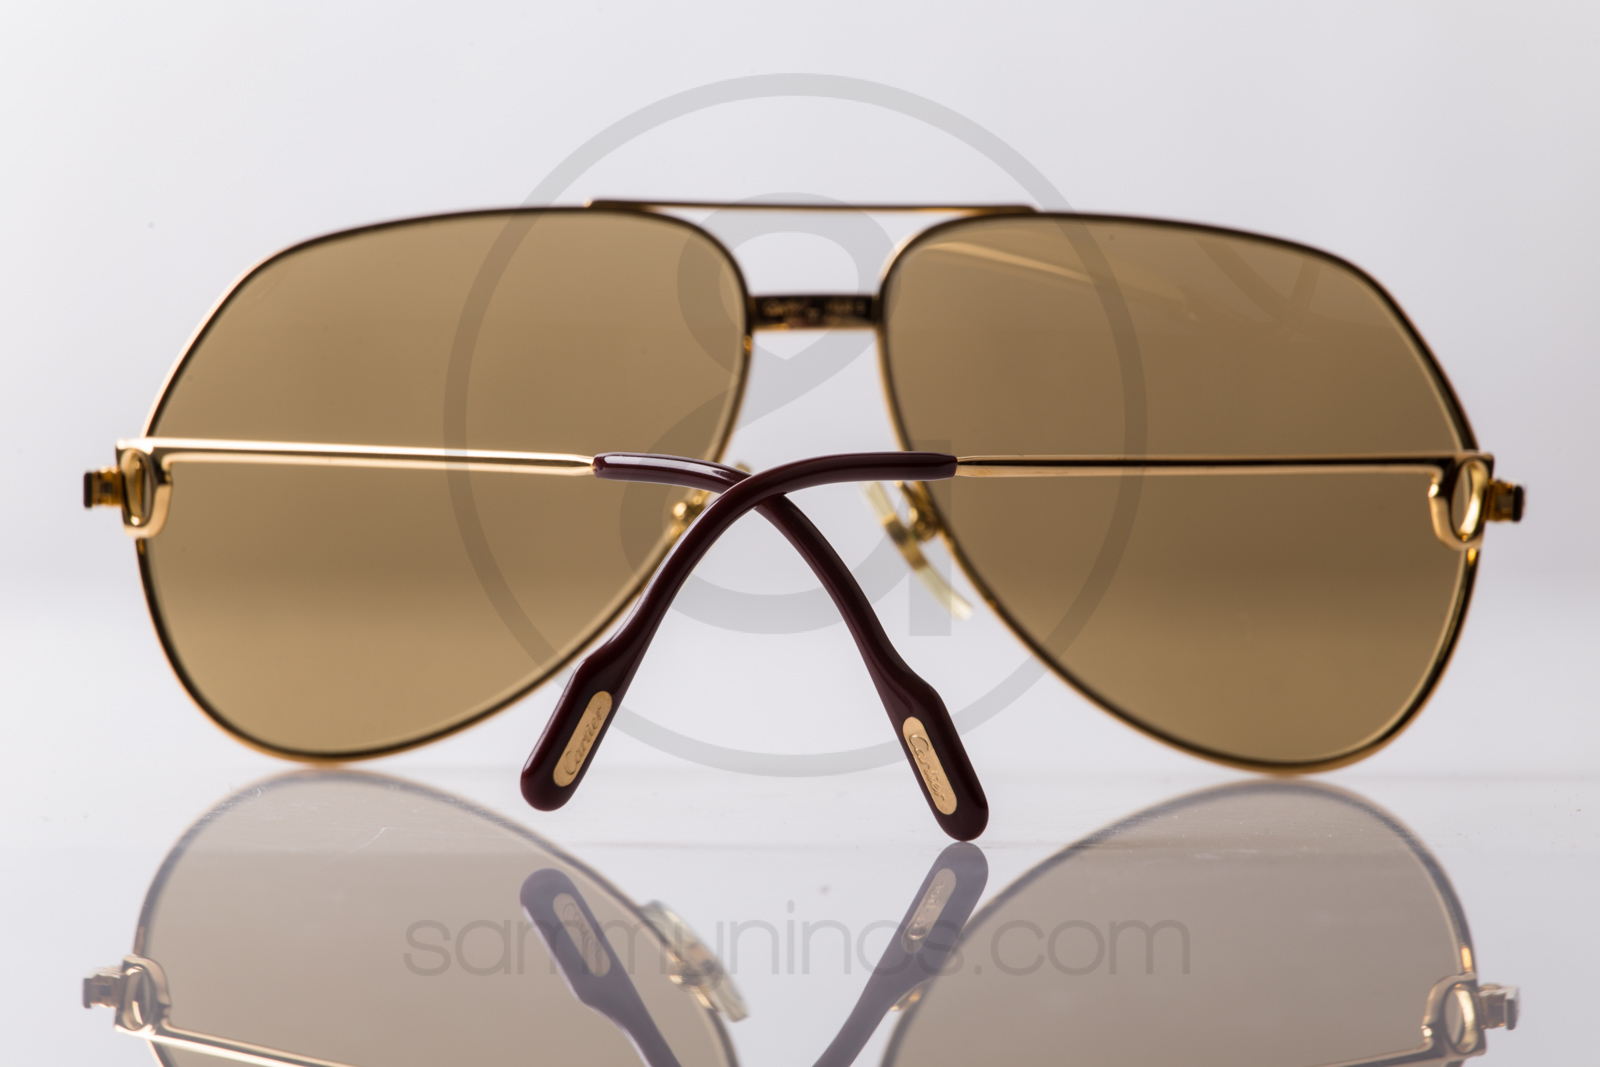 dd9d96cdd840 Cartier Aviator Sunglasses Santos - Restaurant and Palinka Bar